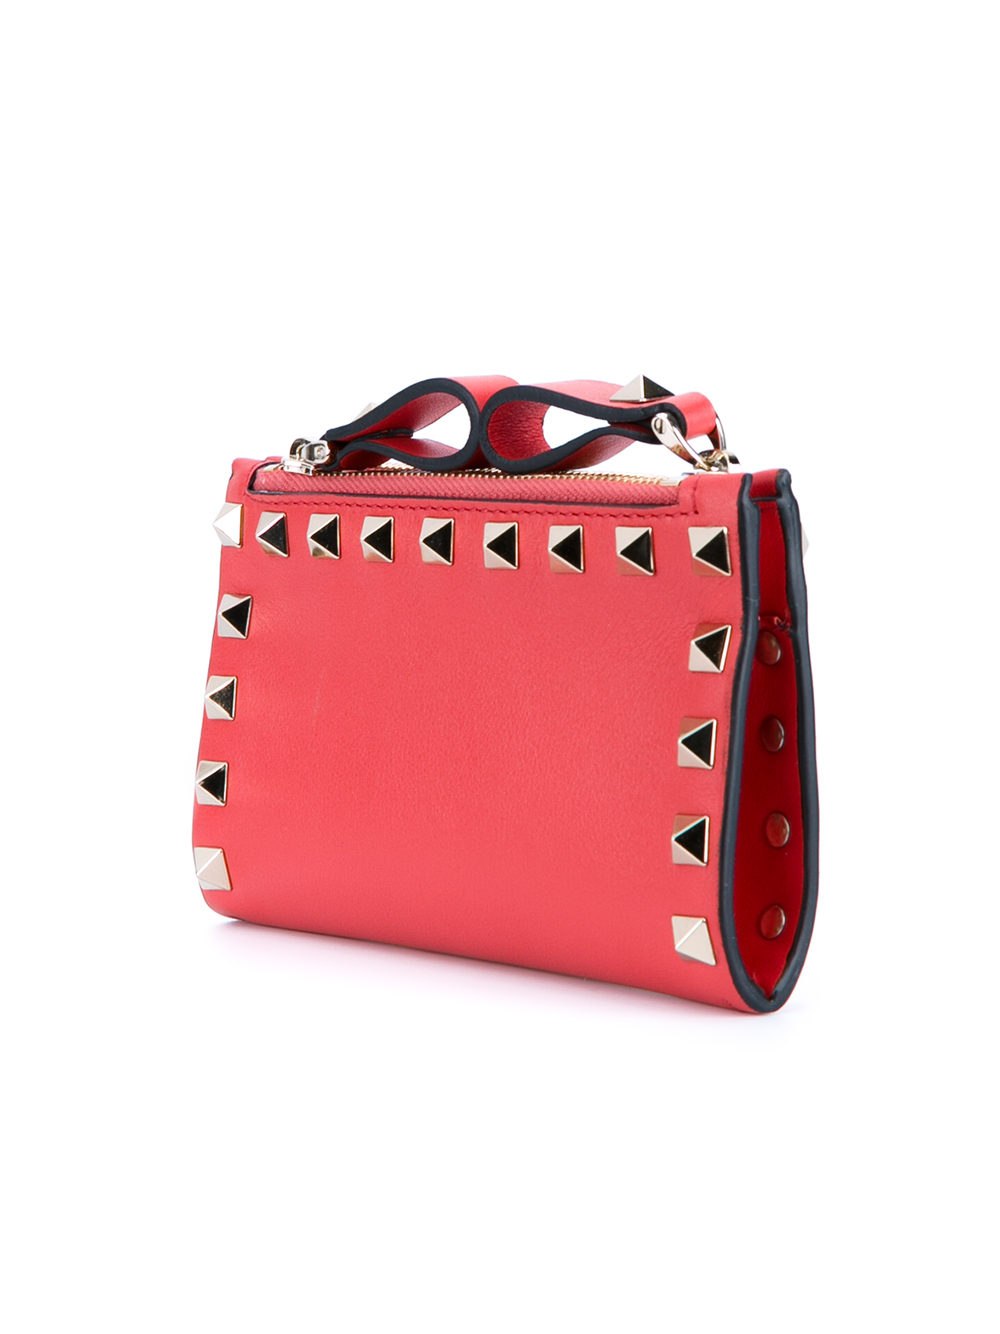 Rockstud coin purse - Red Valentino Mh0P02k